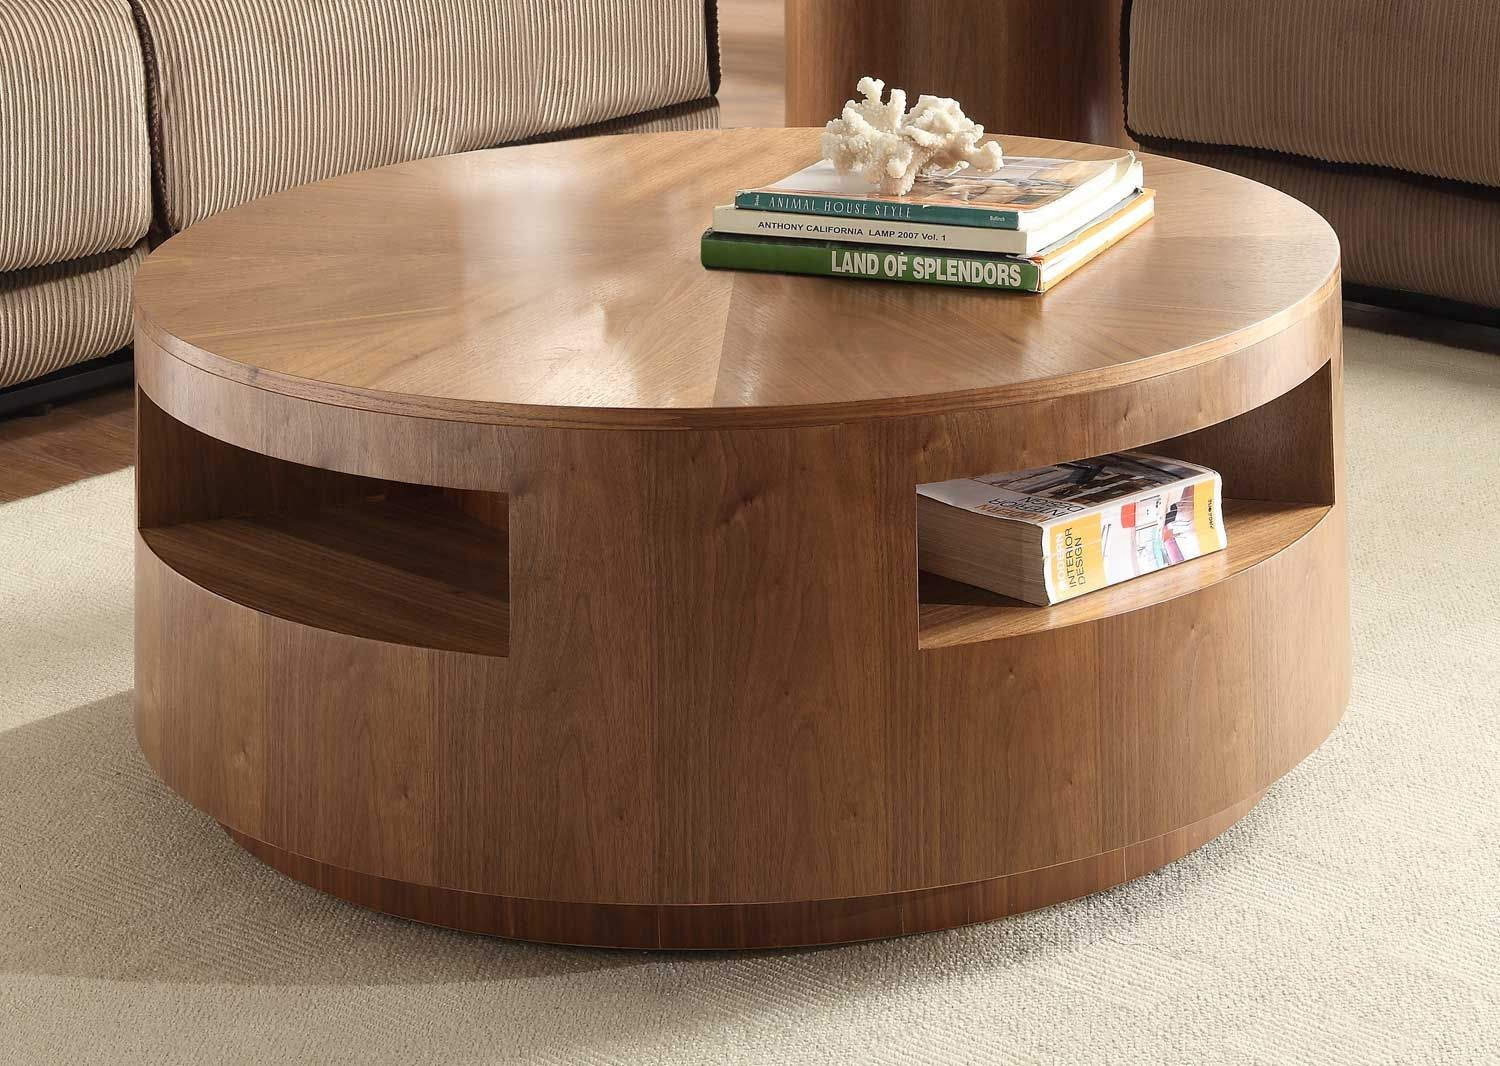 Round Coffee Table Ikea Best Coffee Table Design Ideas Coffee With Regard To Round Coffee T Round Coffee Table Ikea Round Wood Coffee Table Coffee Table Design [ 1066 x 1500 Pixel ]